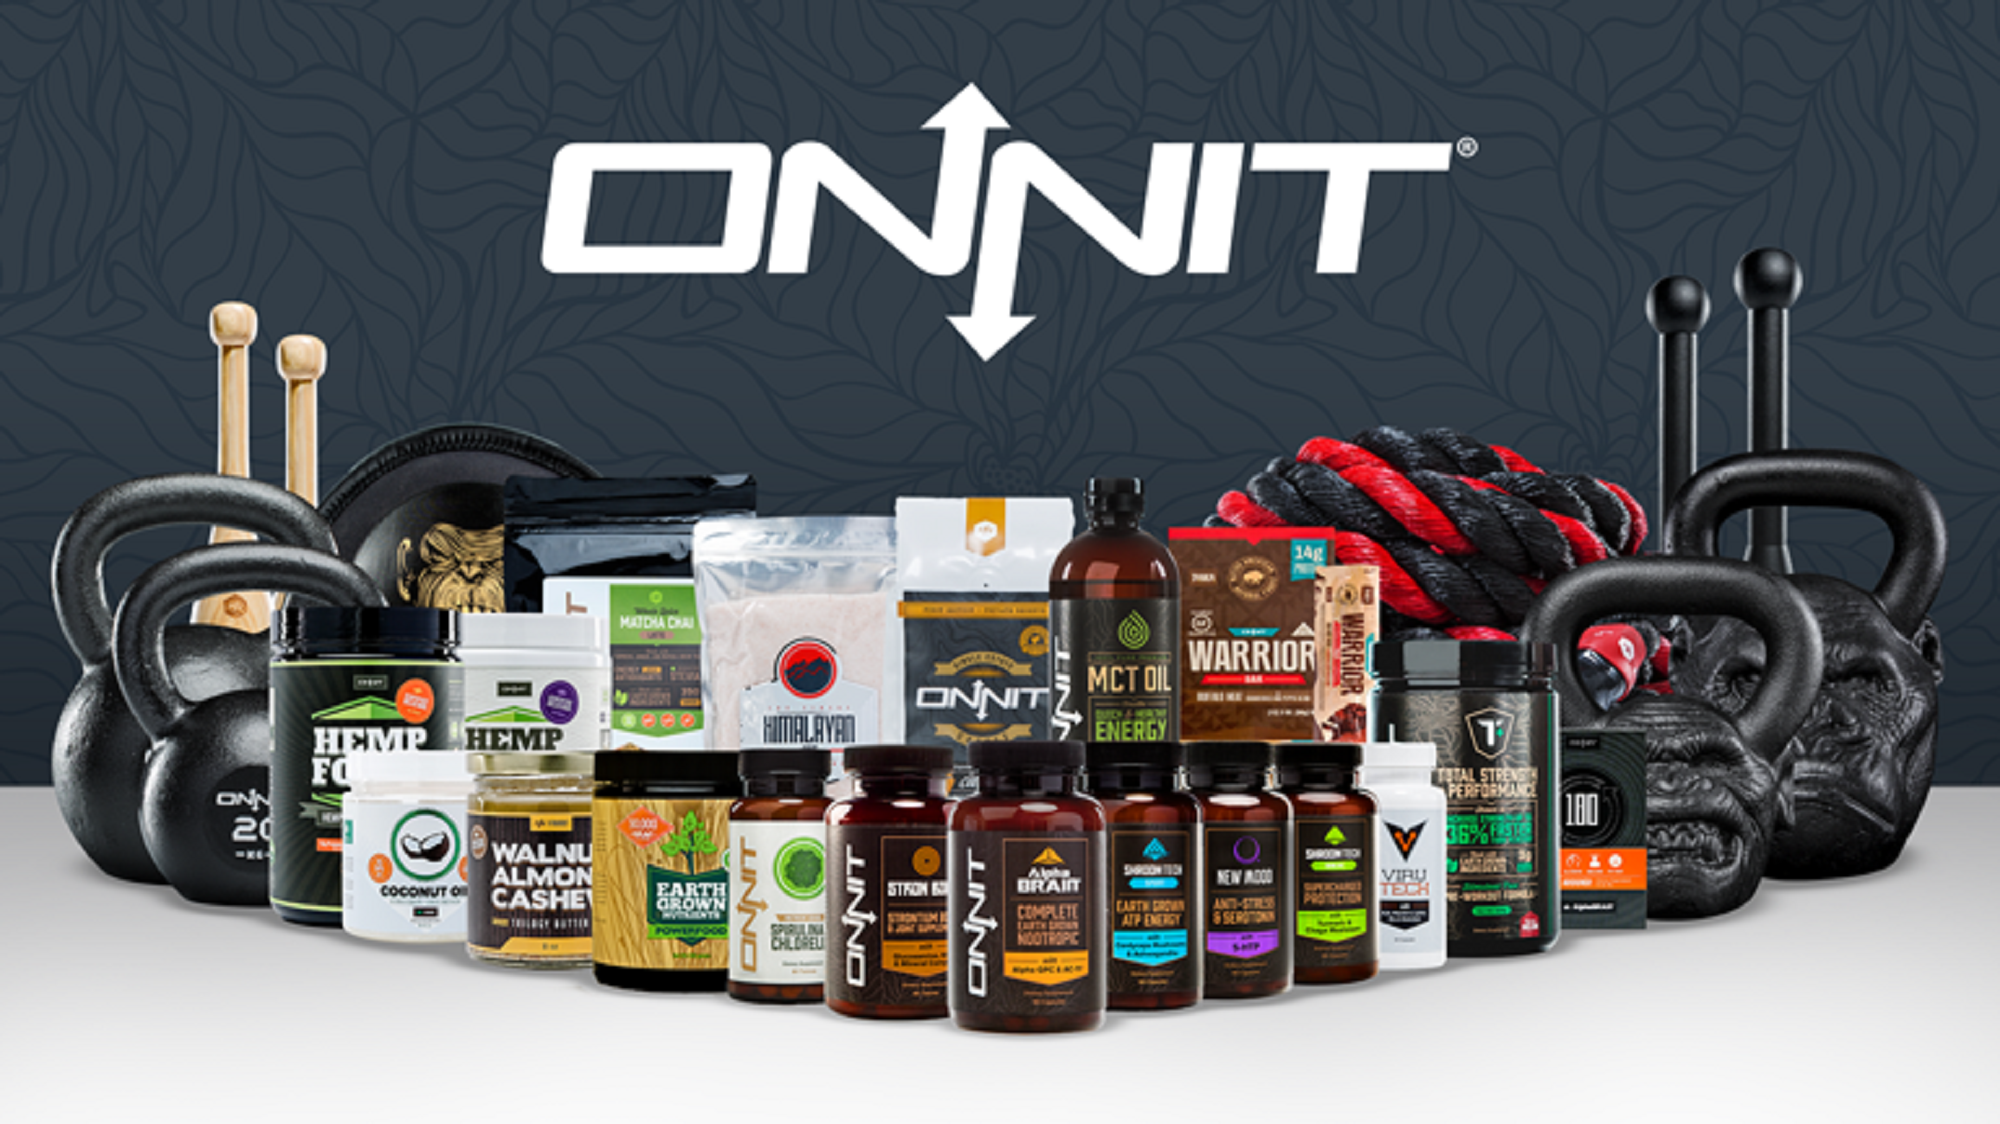 How Onnit became data rich